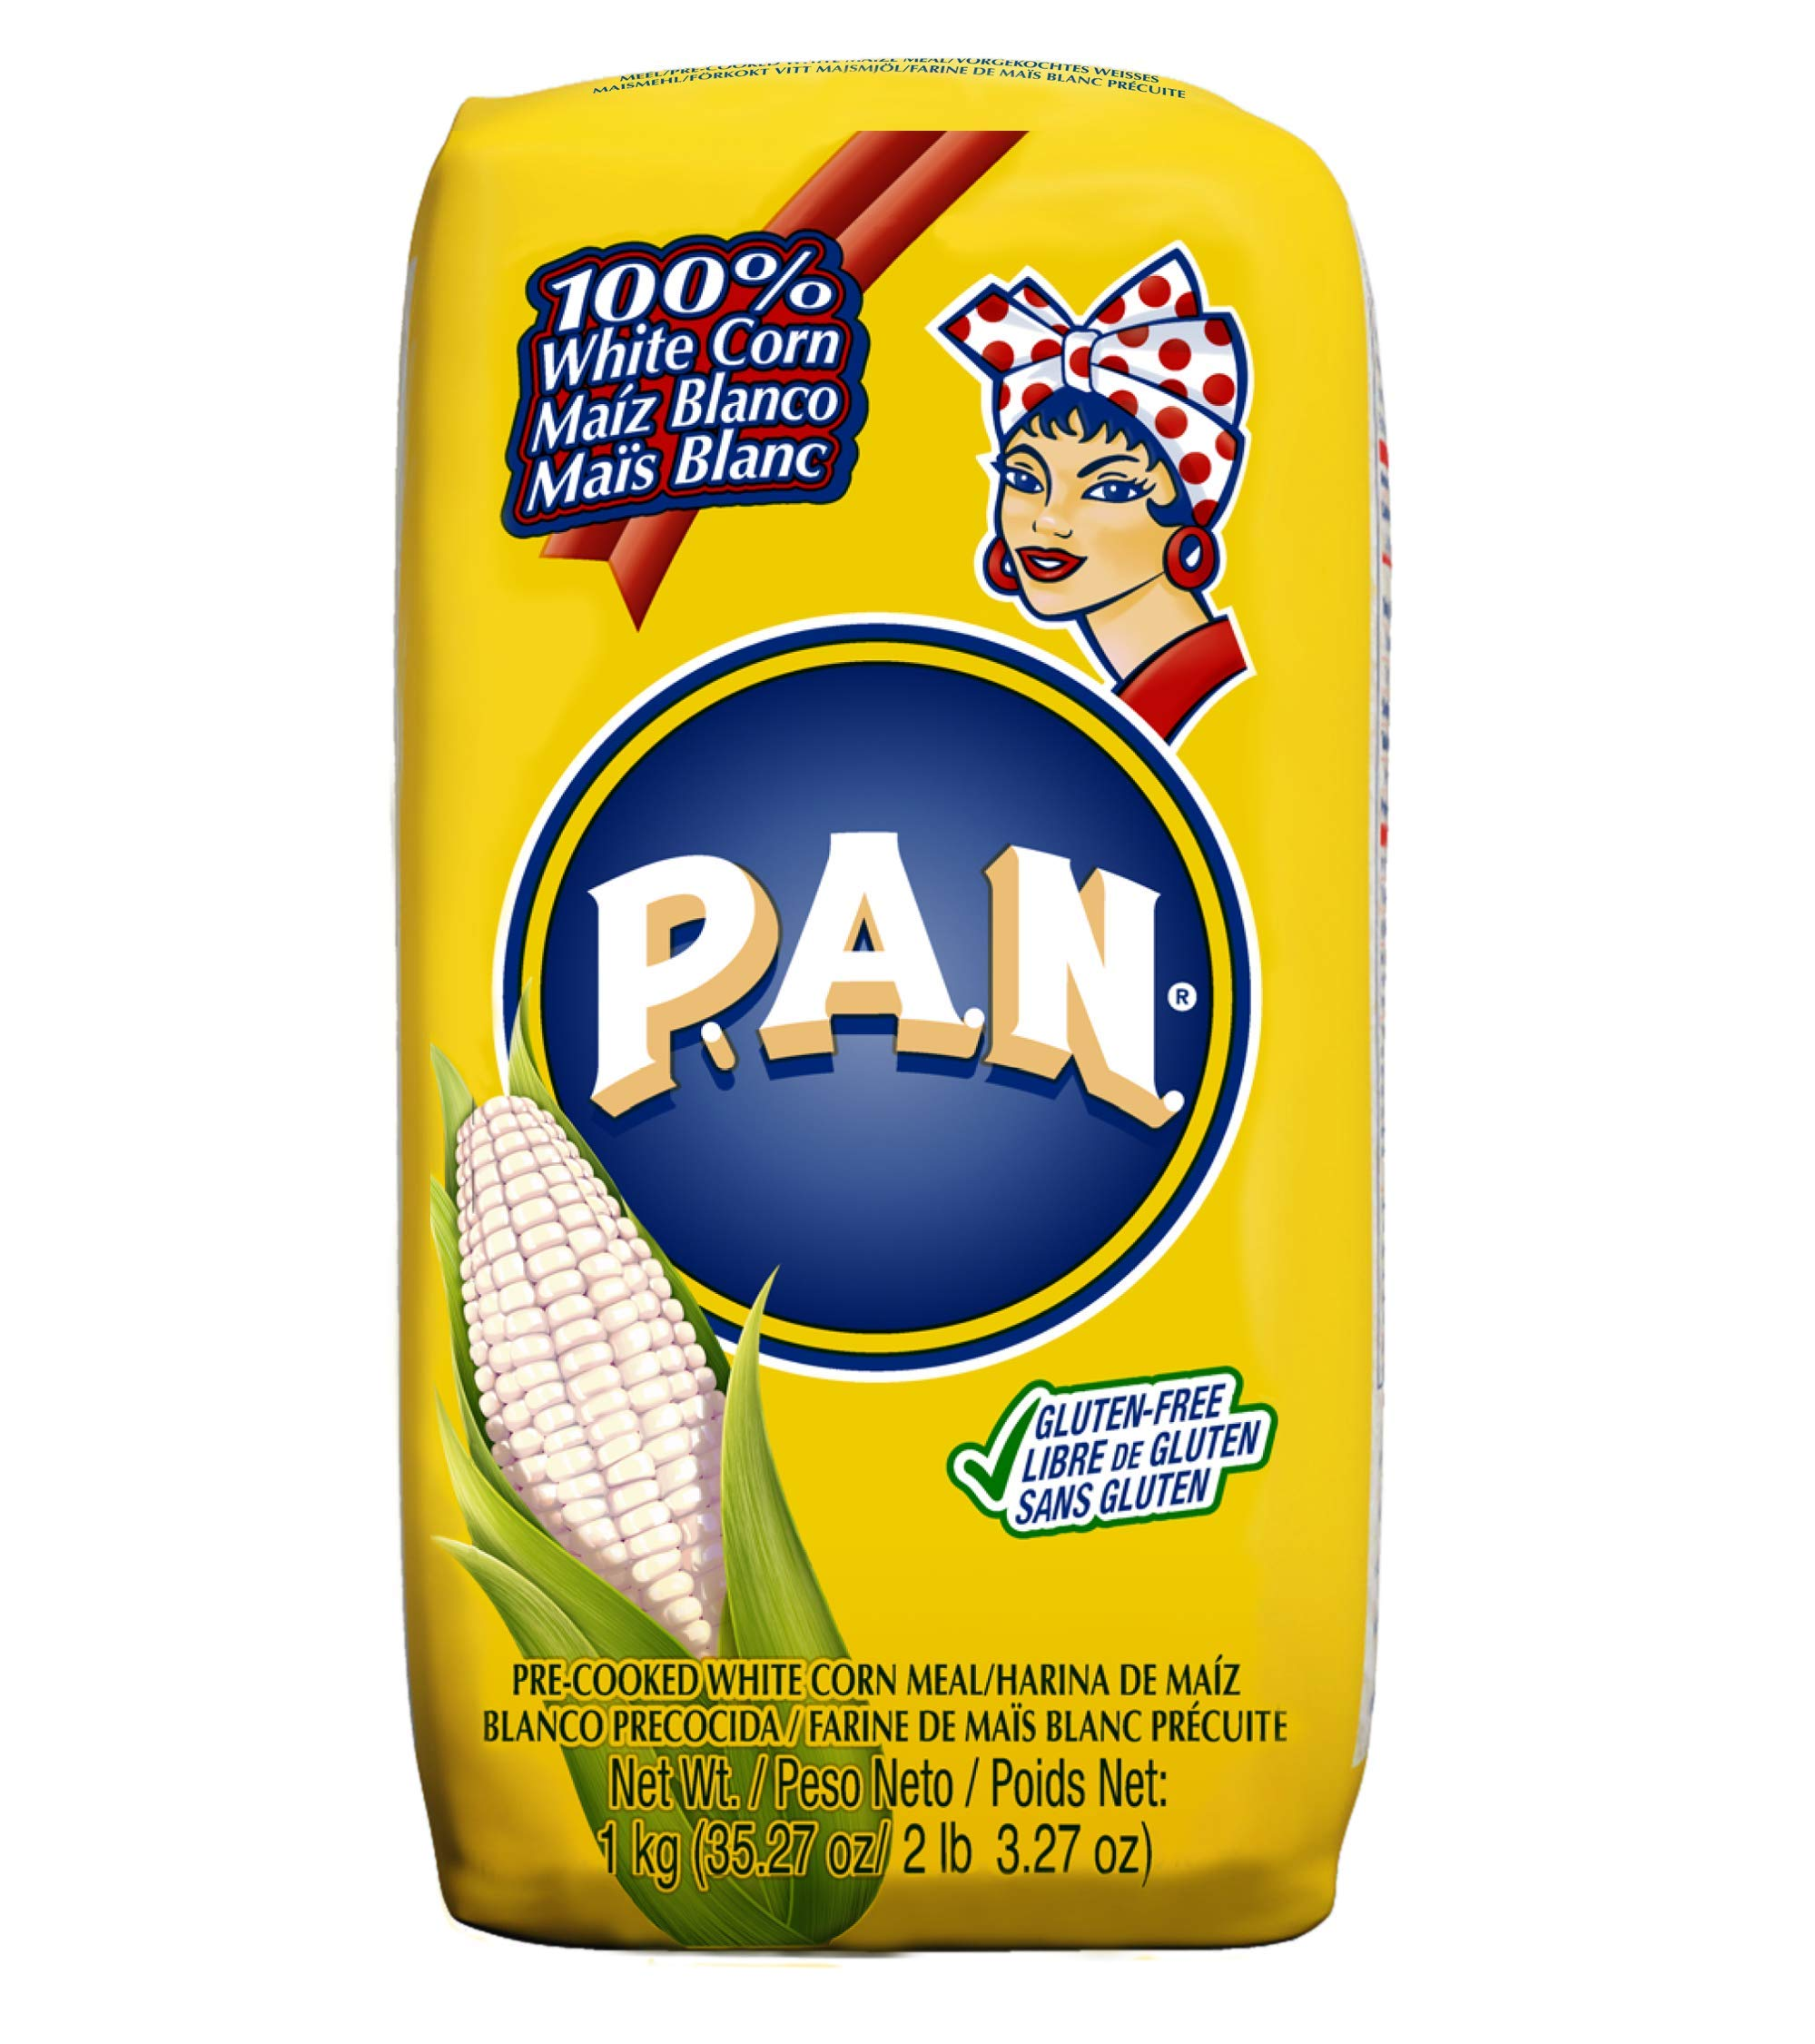 P.A.N. White Corn Meal - Pre-cooked Gluten Free and Kosher Flour for Arepas, 1 Kilogram (35 Ounces / 2 Pounds 3.3 Ounces)